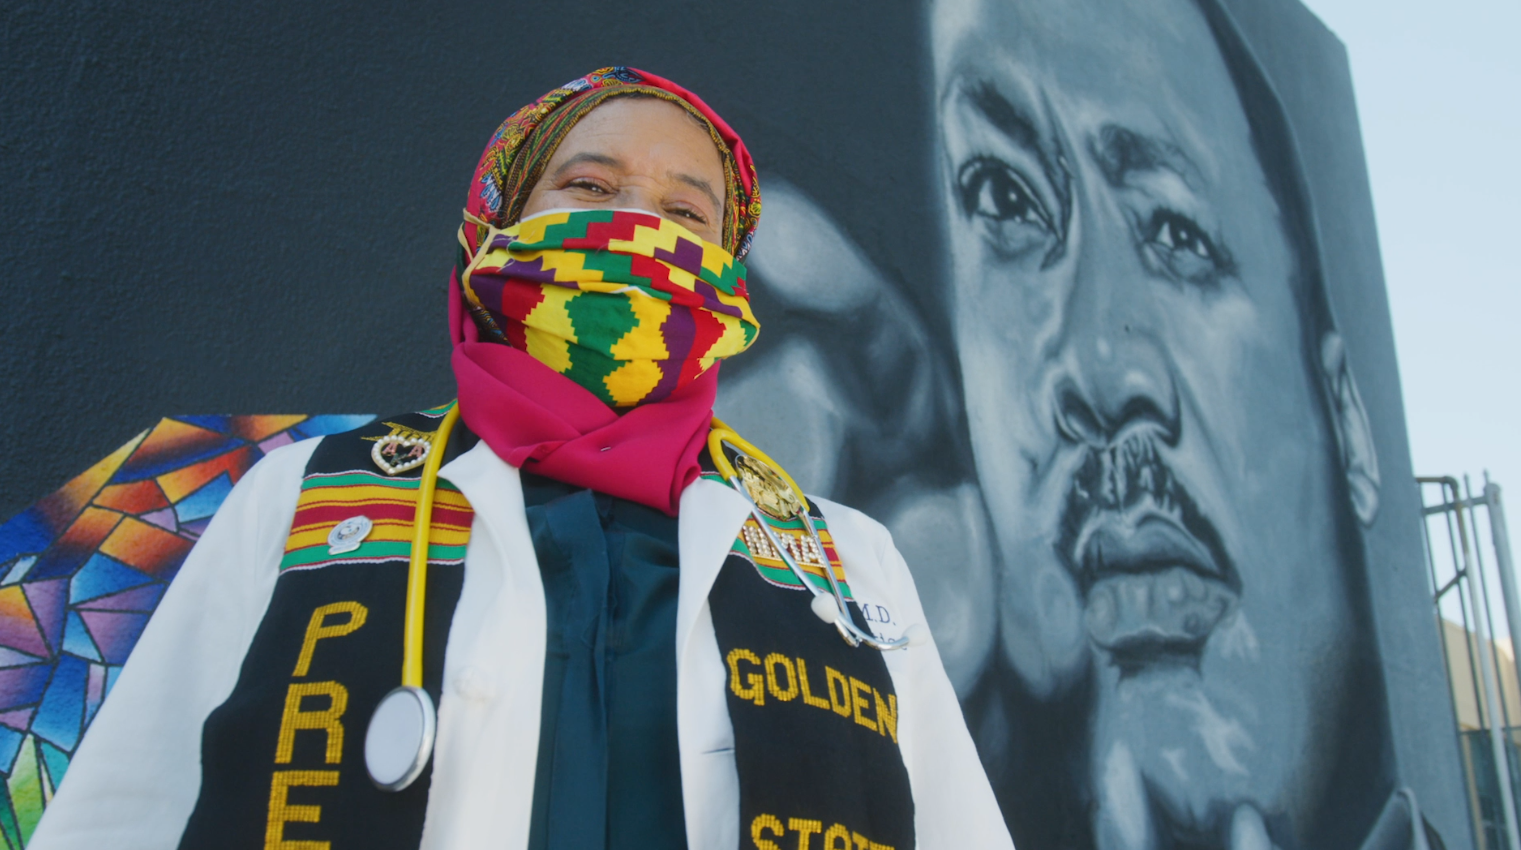 Dr. Khadijah Lang, president of the Golden State Medical Association, stands in front of a mural of Dr. Martin Luther King Jr. in Los Angeles. (Direct Relief)